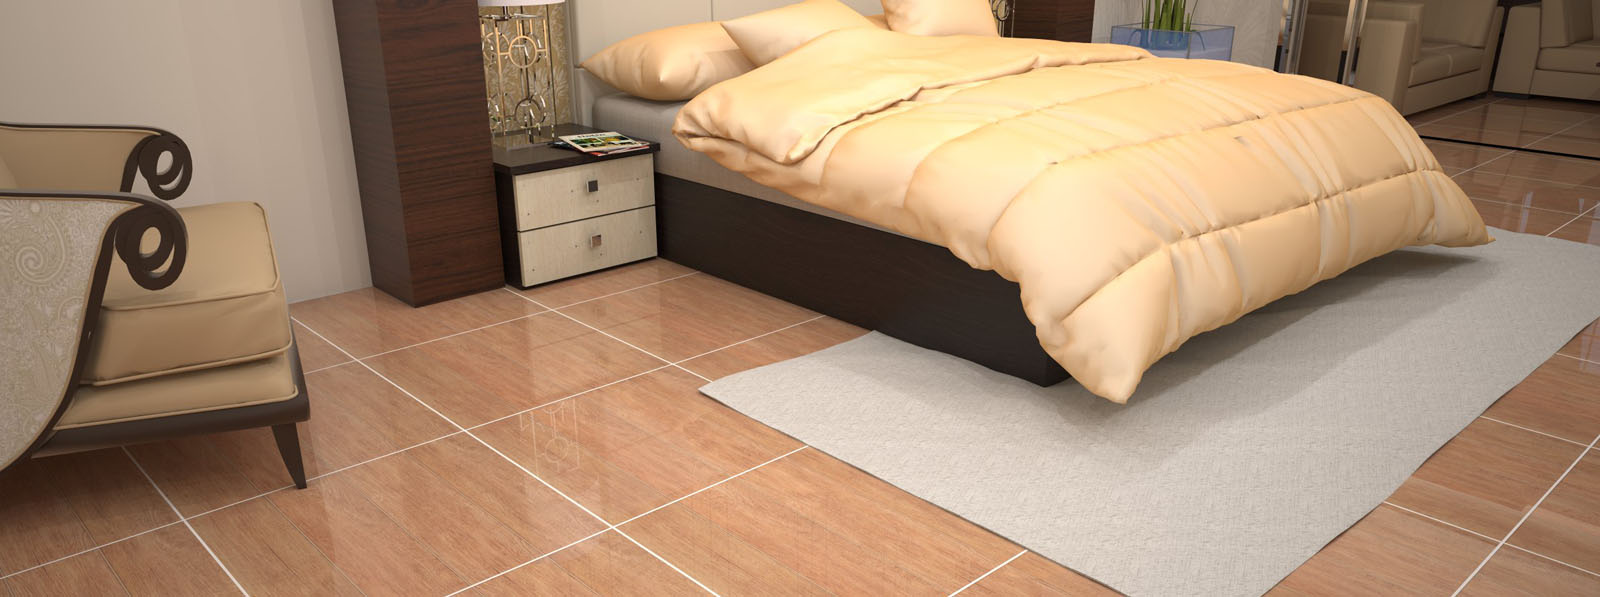 Mariwasa Siam Ceramics Inc. – Full HD Tiles Philippines